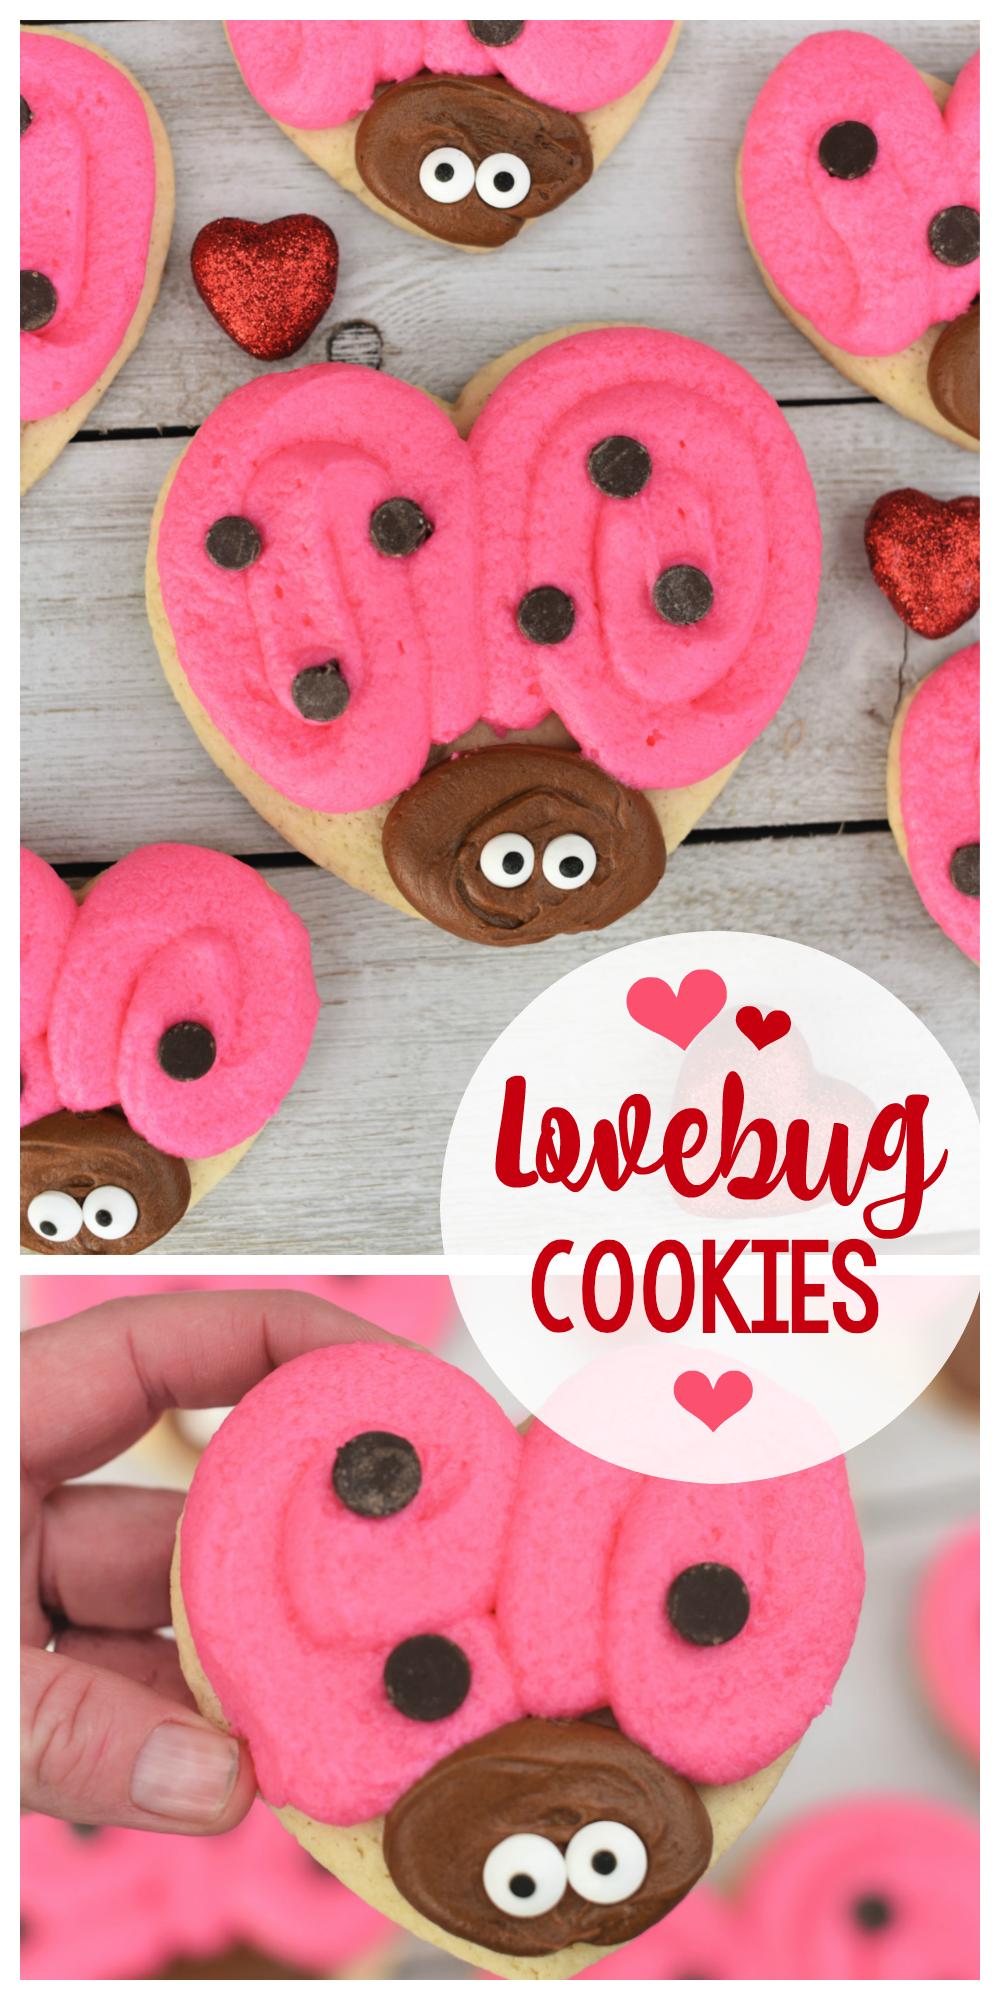 Lovebug Valentine's Cookies-These cute treats are perfect for a Valentine's party for kids or just a fun treat at home. Easy to make Valentine's cookies that turn out so cute! #valentinesday